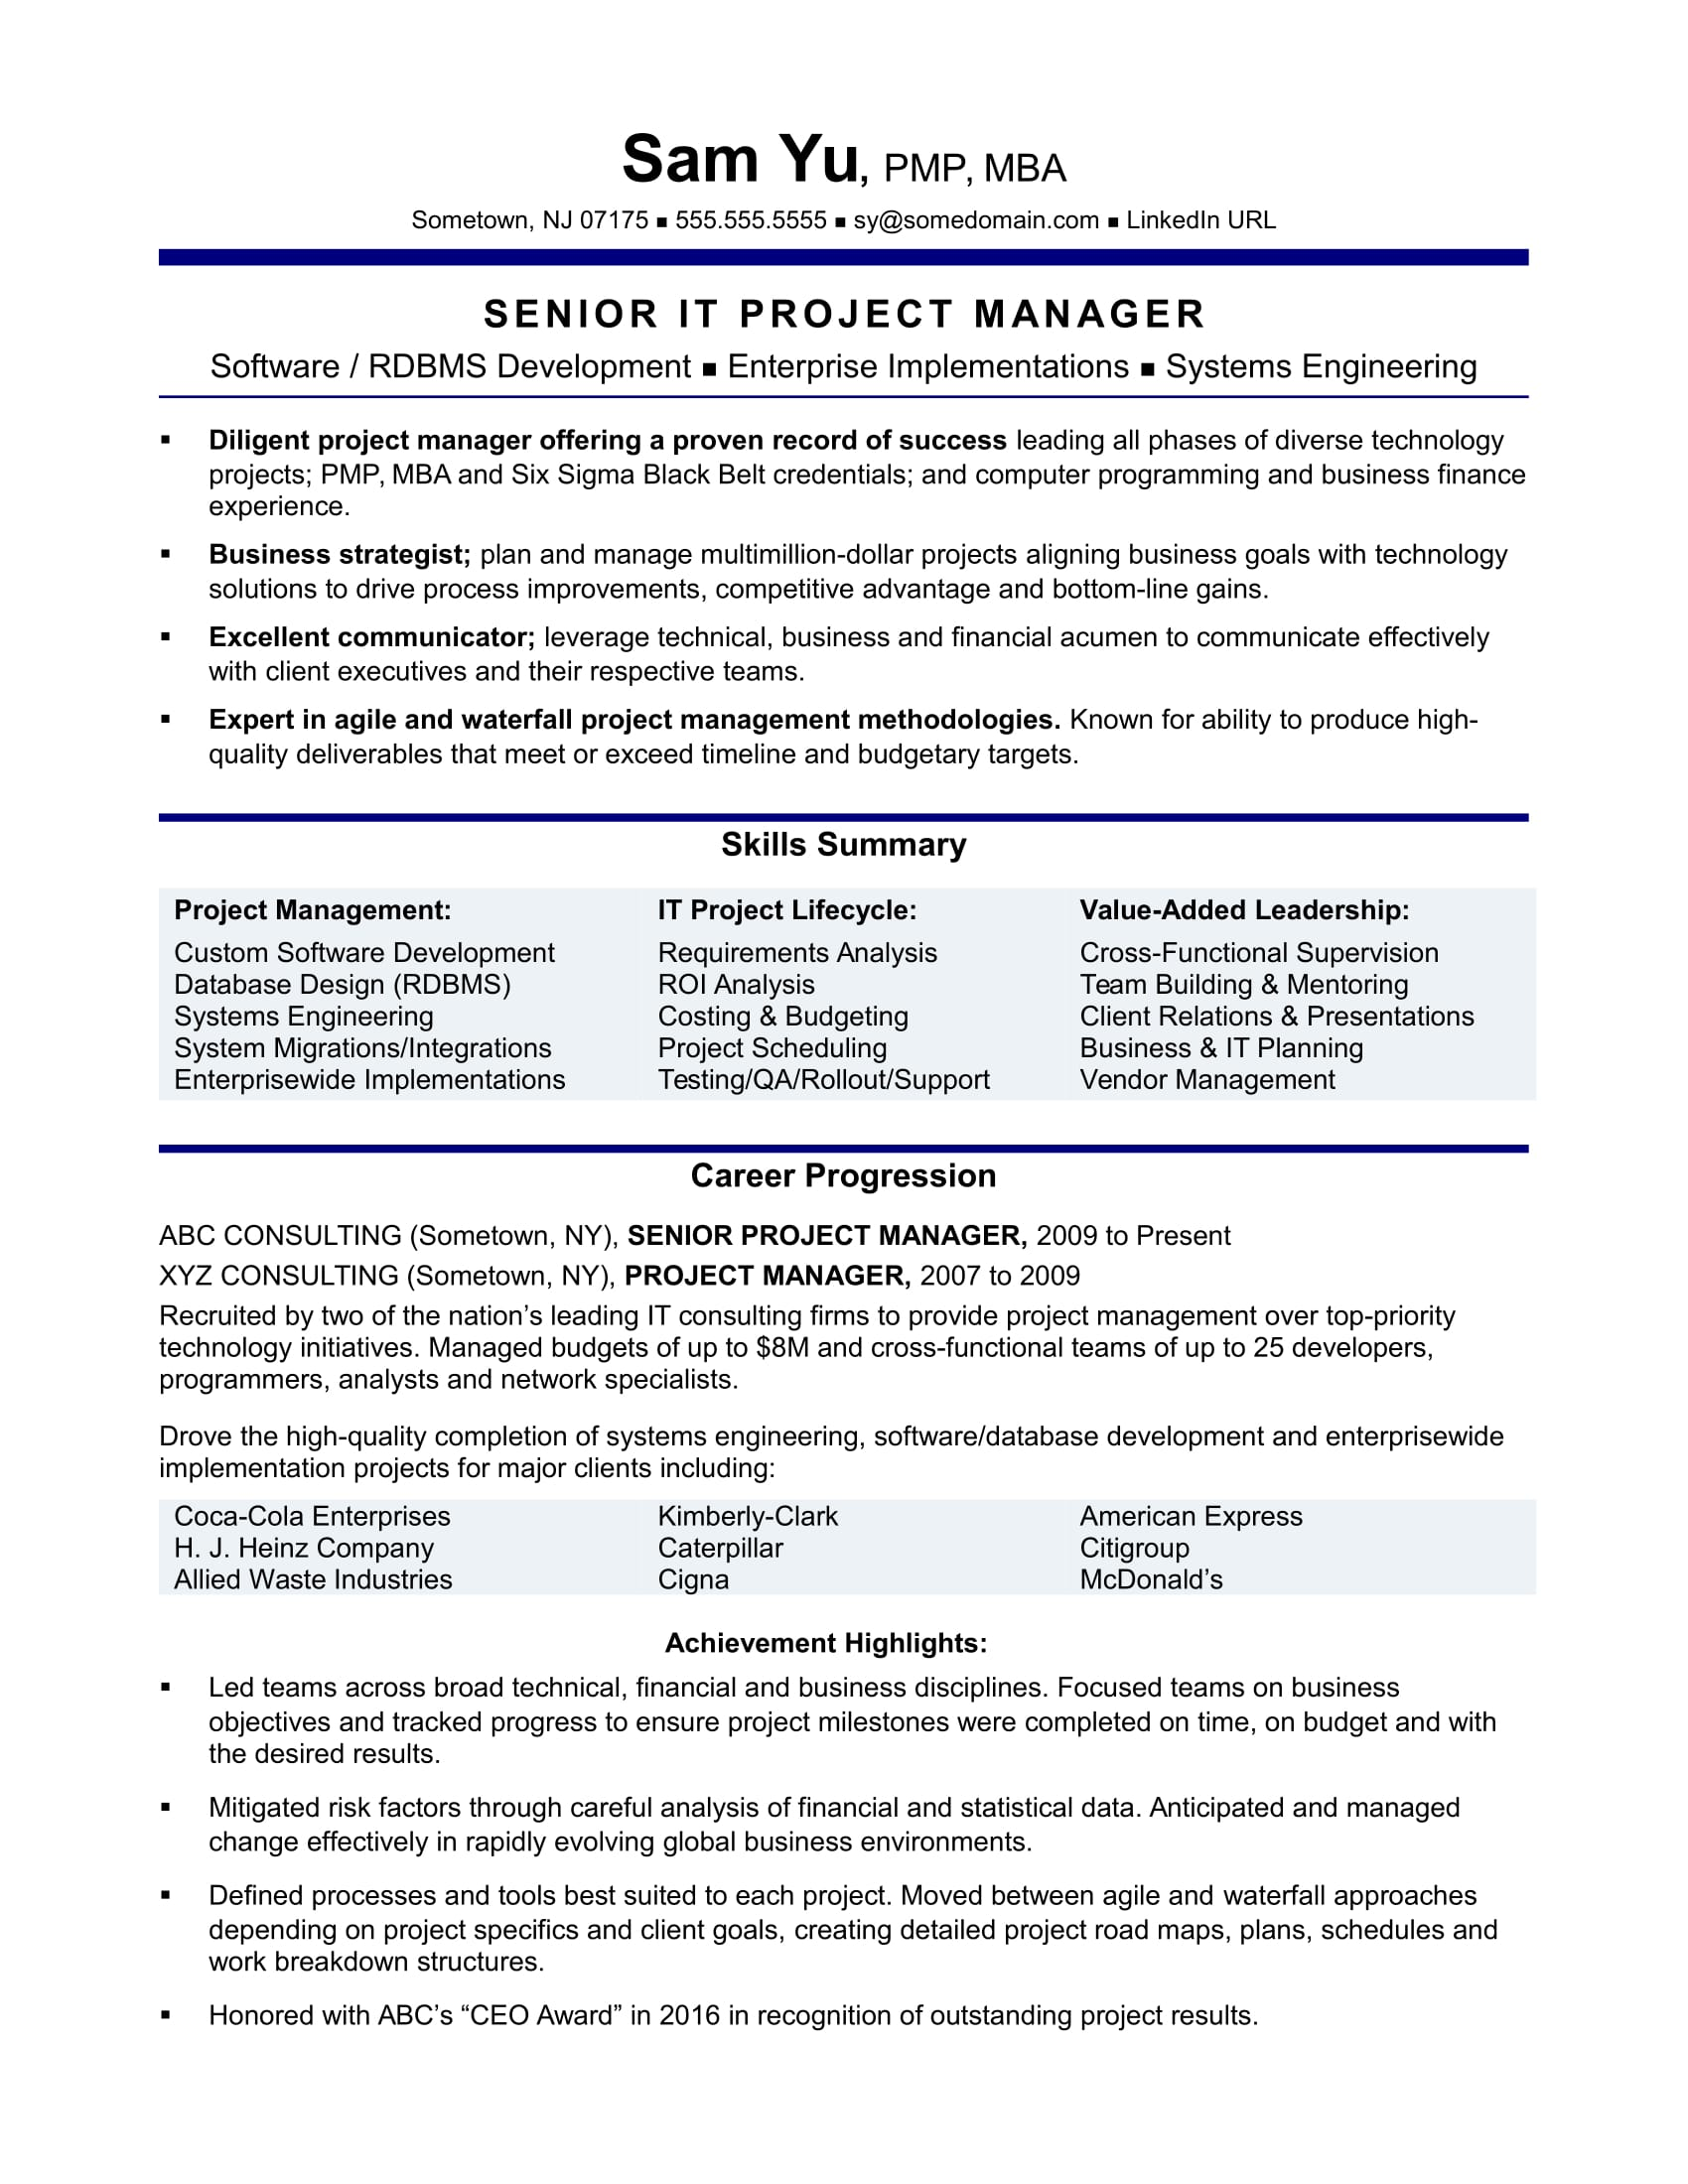 Superior Experienced IT Project Manager Resume Sample